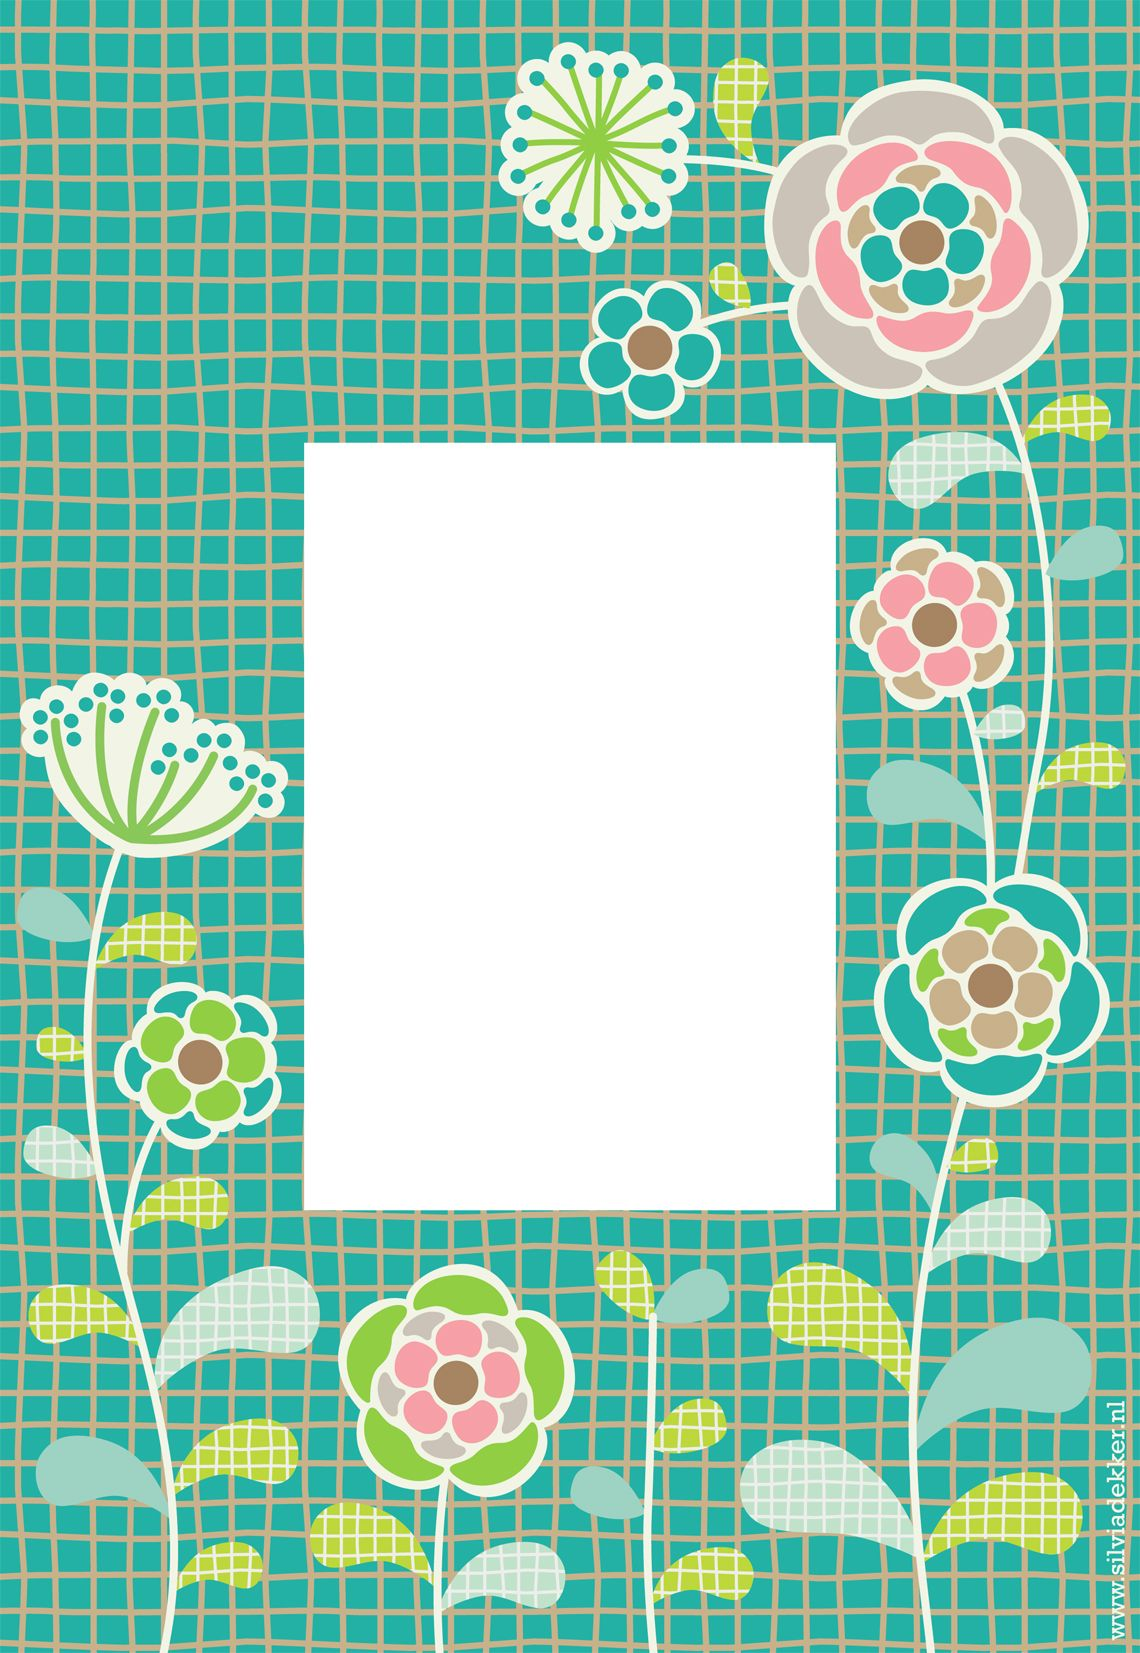 print and frame a picture with this free downloadable photo frame